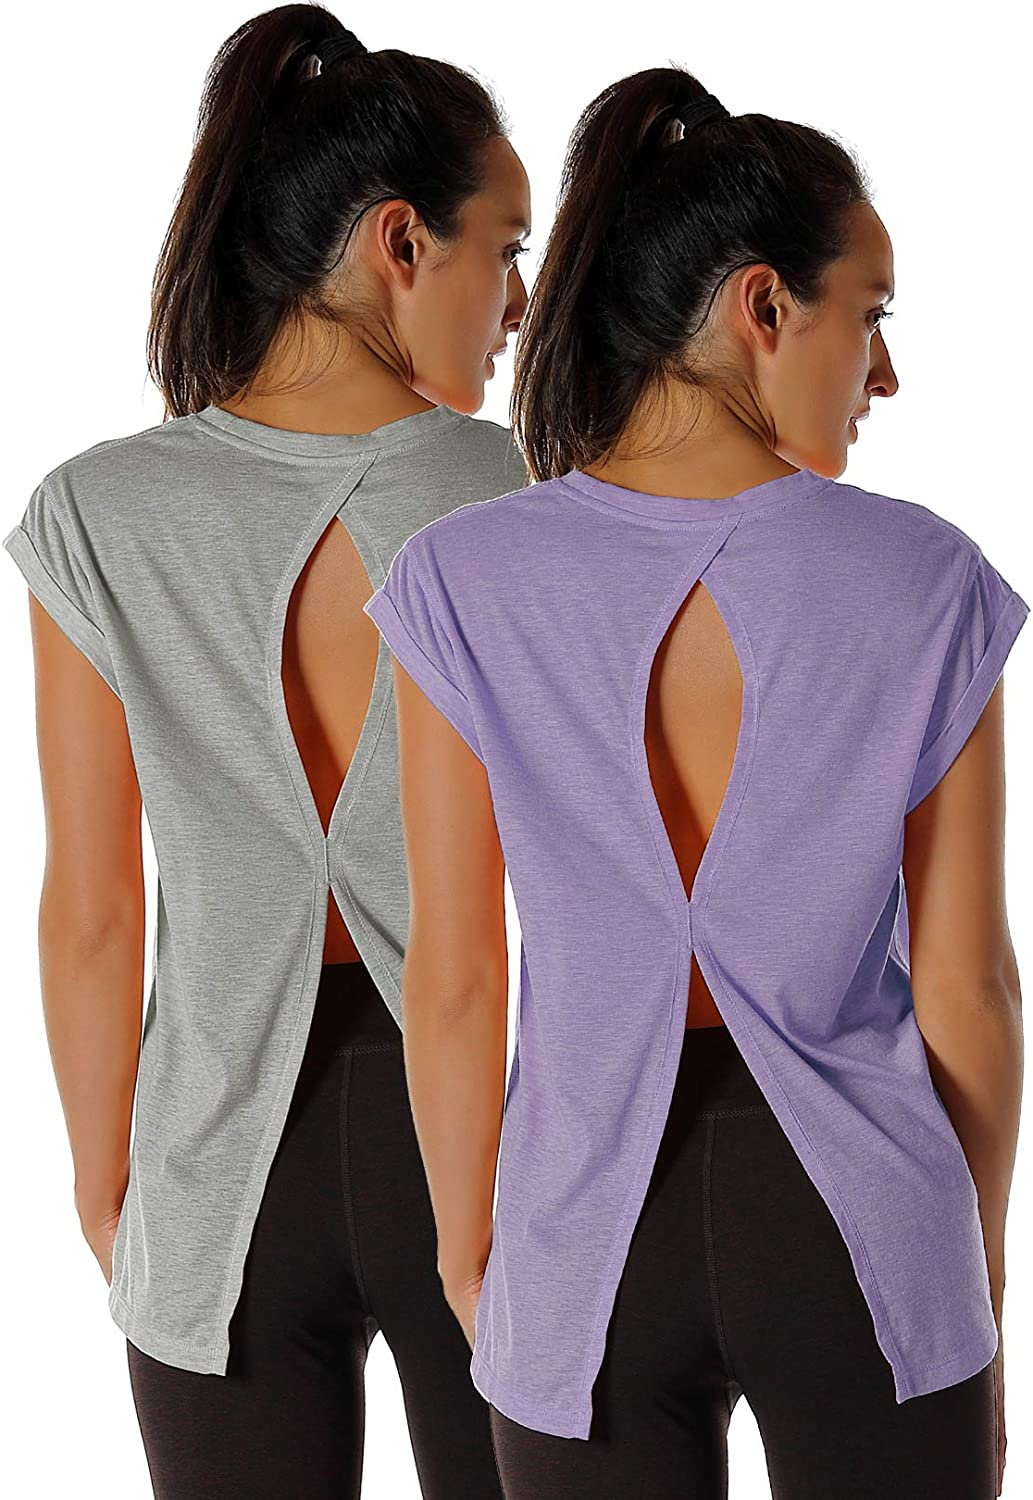 Yoga T-Shirts Activewear Exercise Tops for Women icyzone Open Back Workout Top Shirts Pack of 2